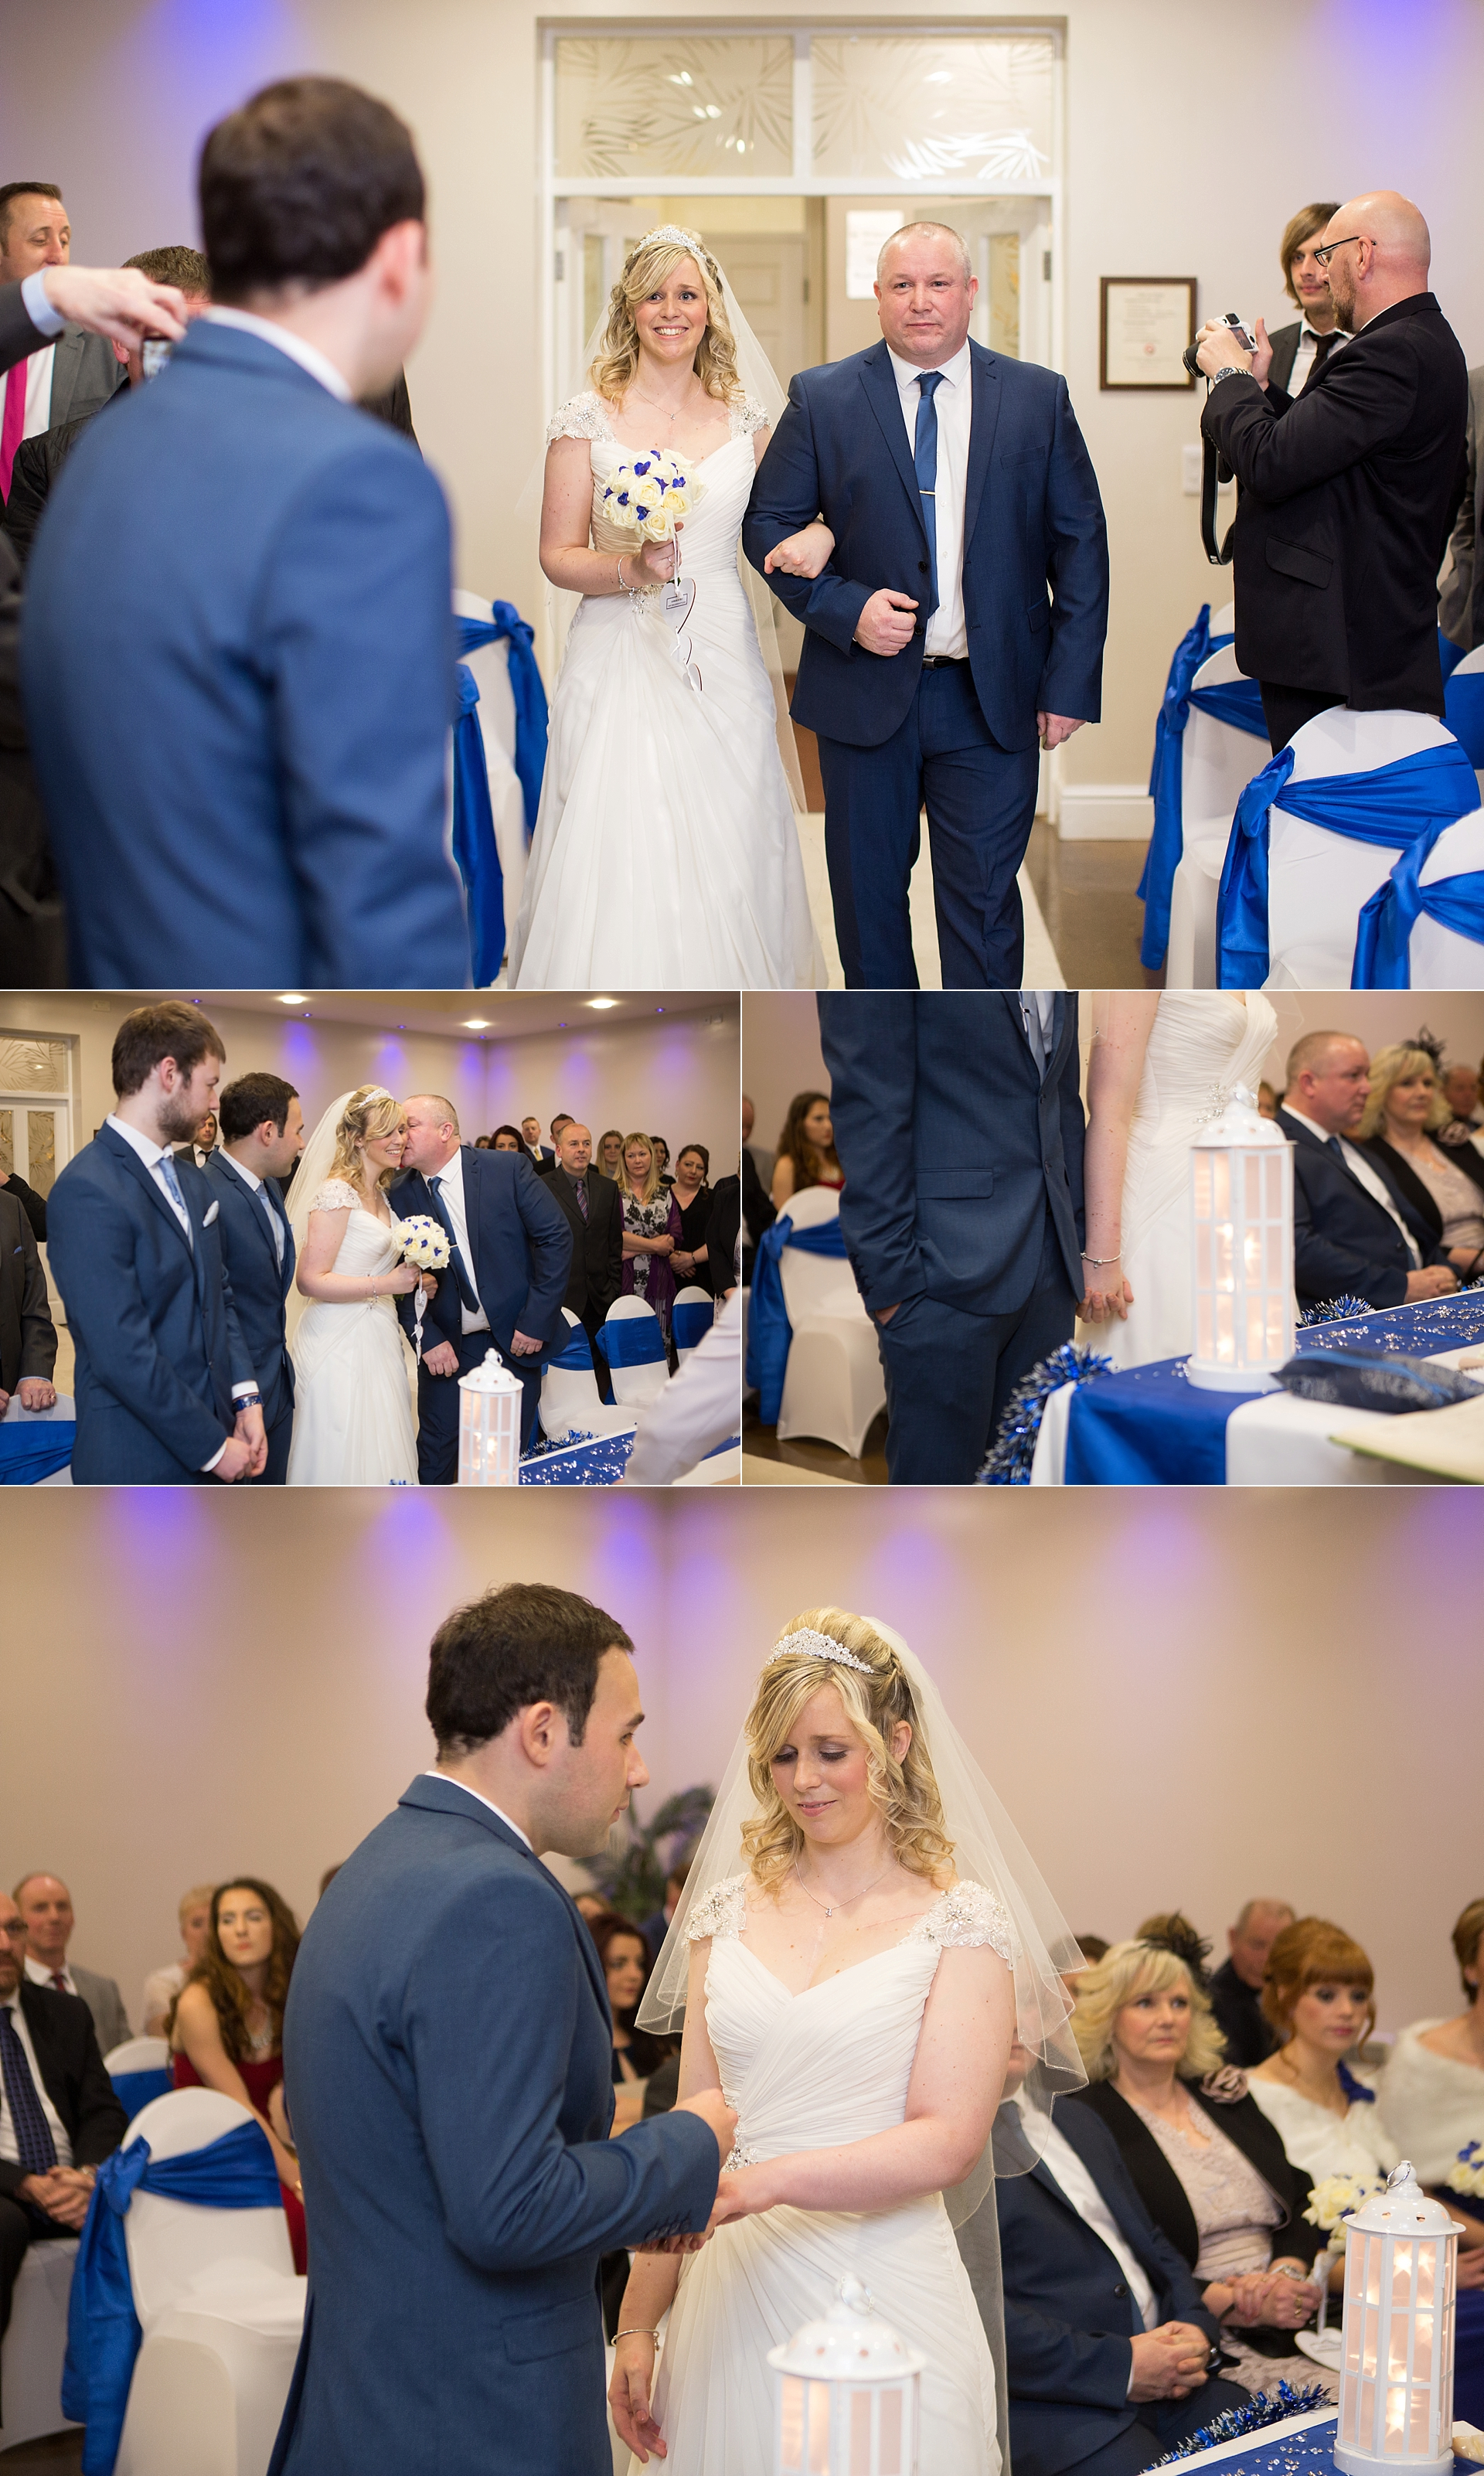 wedding photographer upper house barlaston stoke on trent 6.jpg